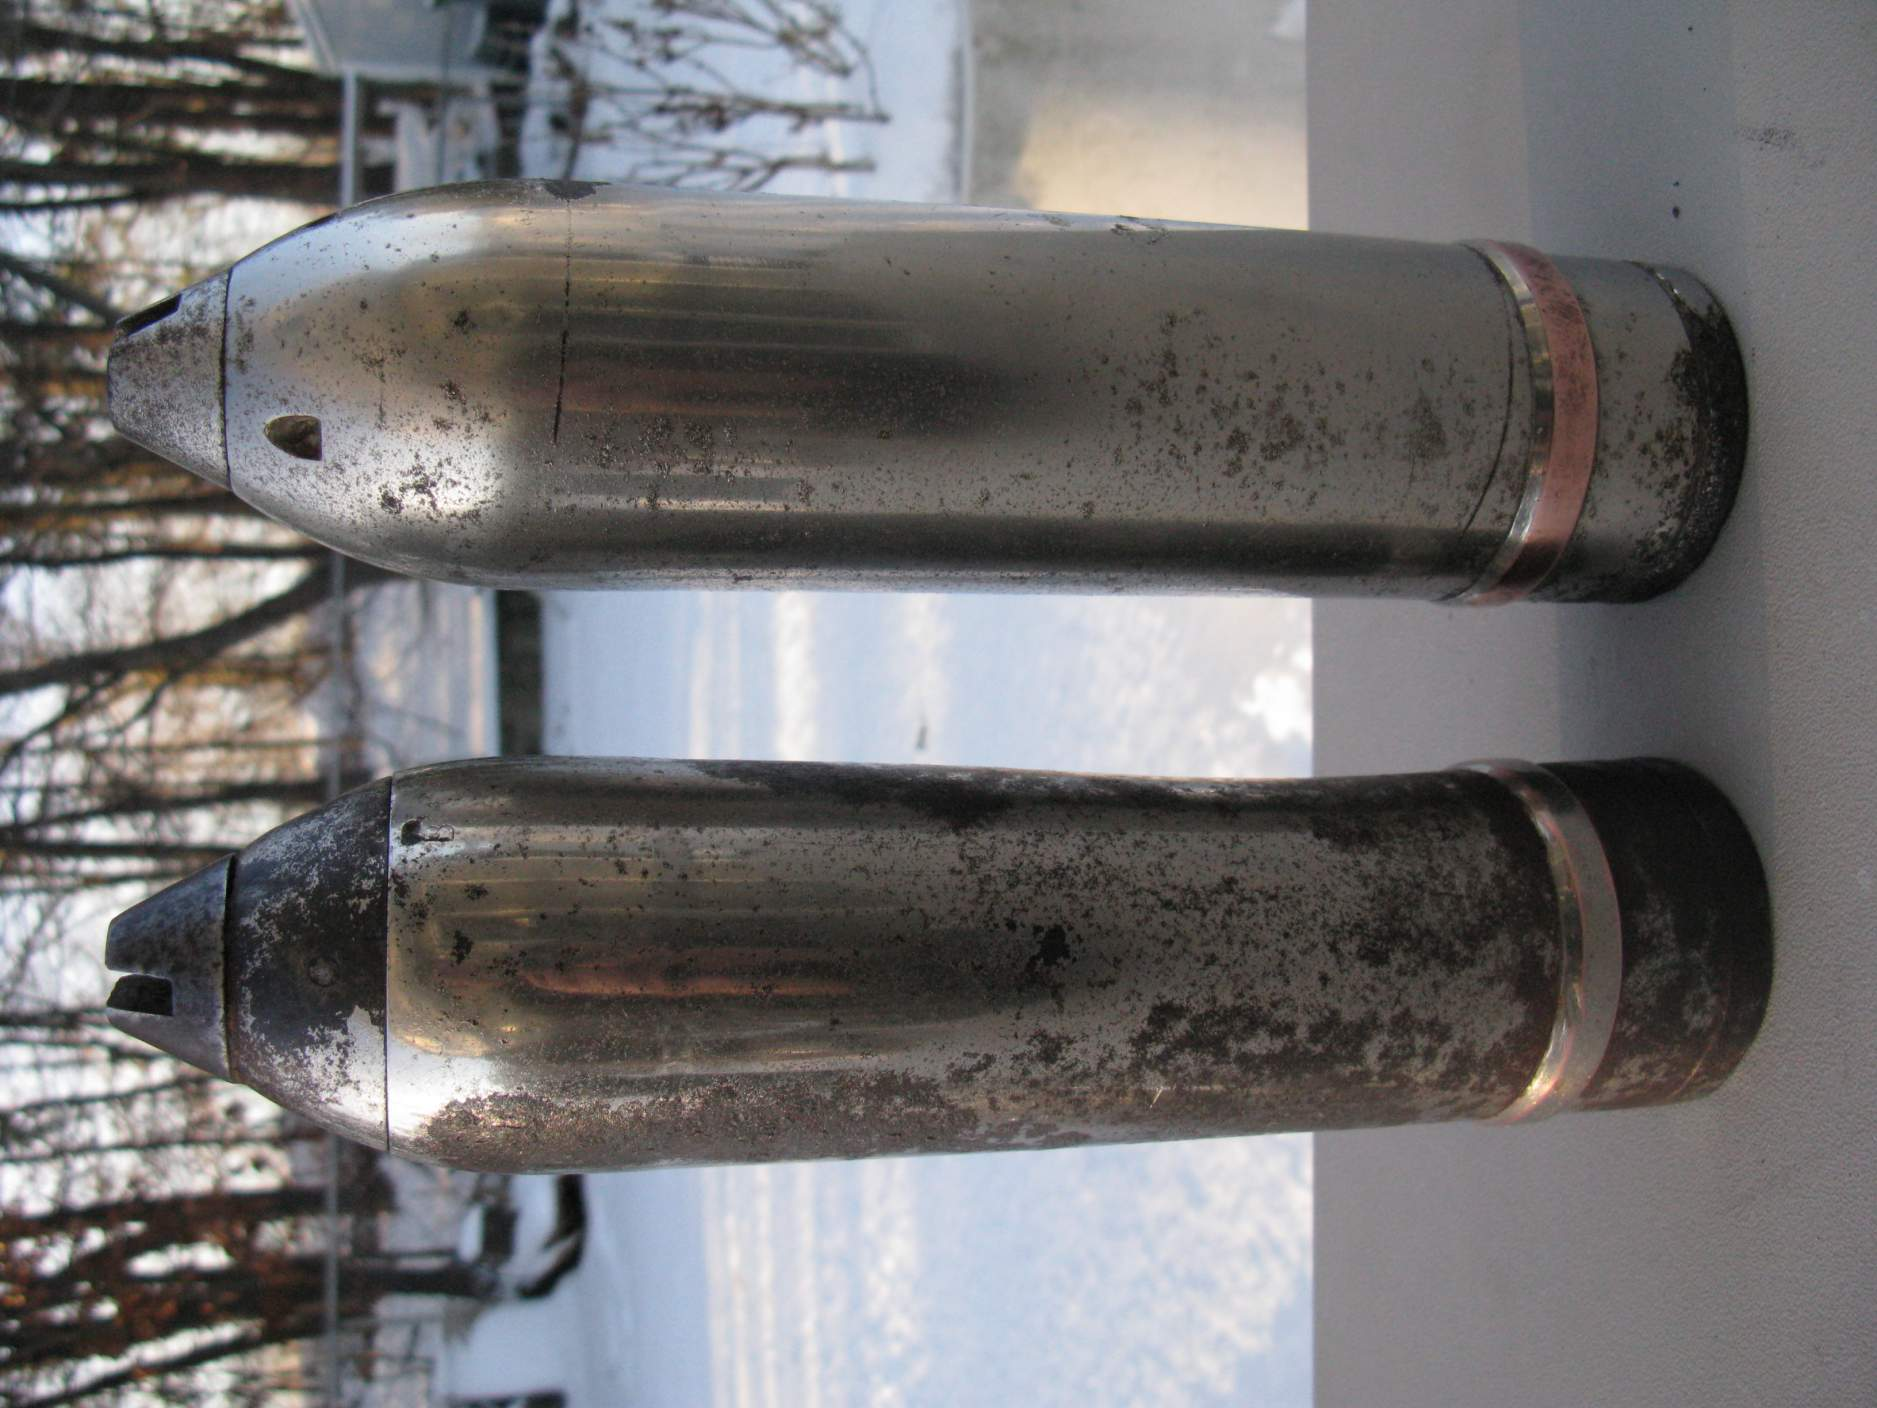 question 12 inch shell projectile identification